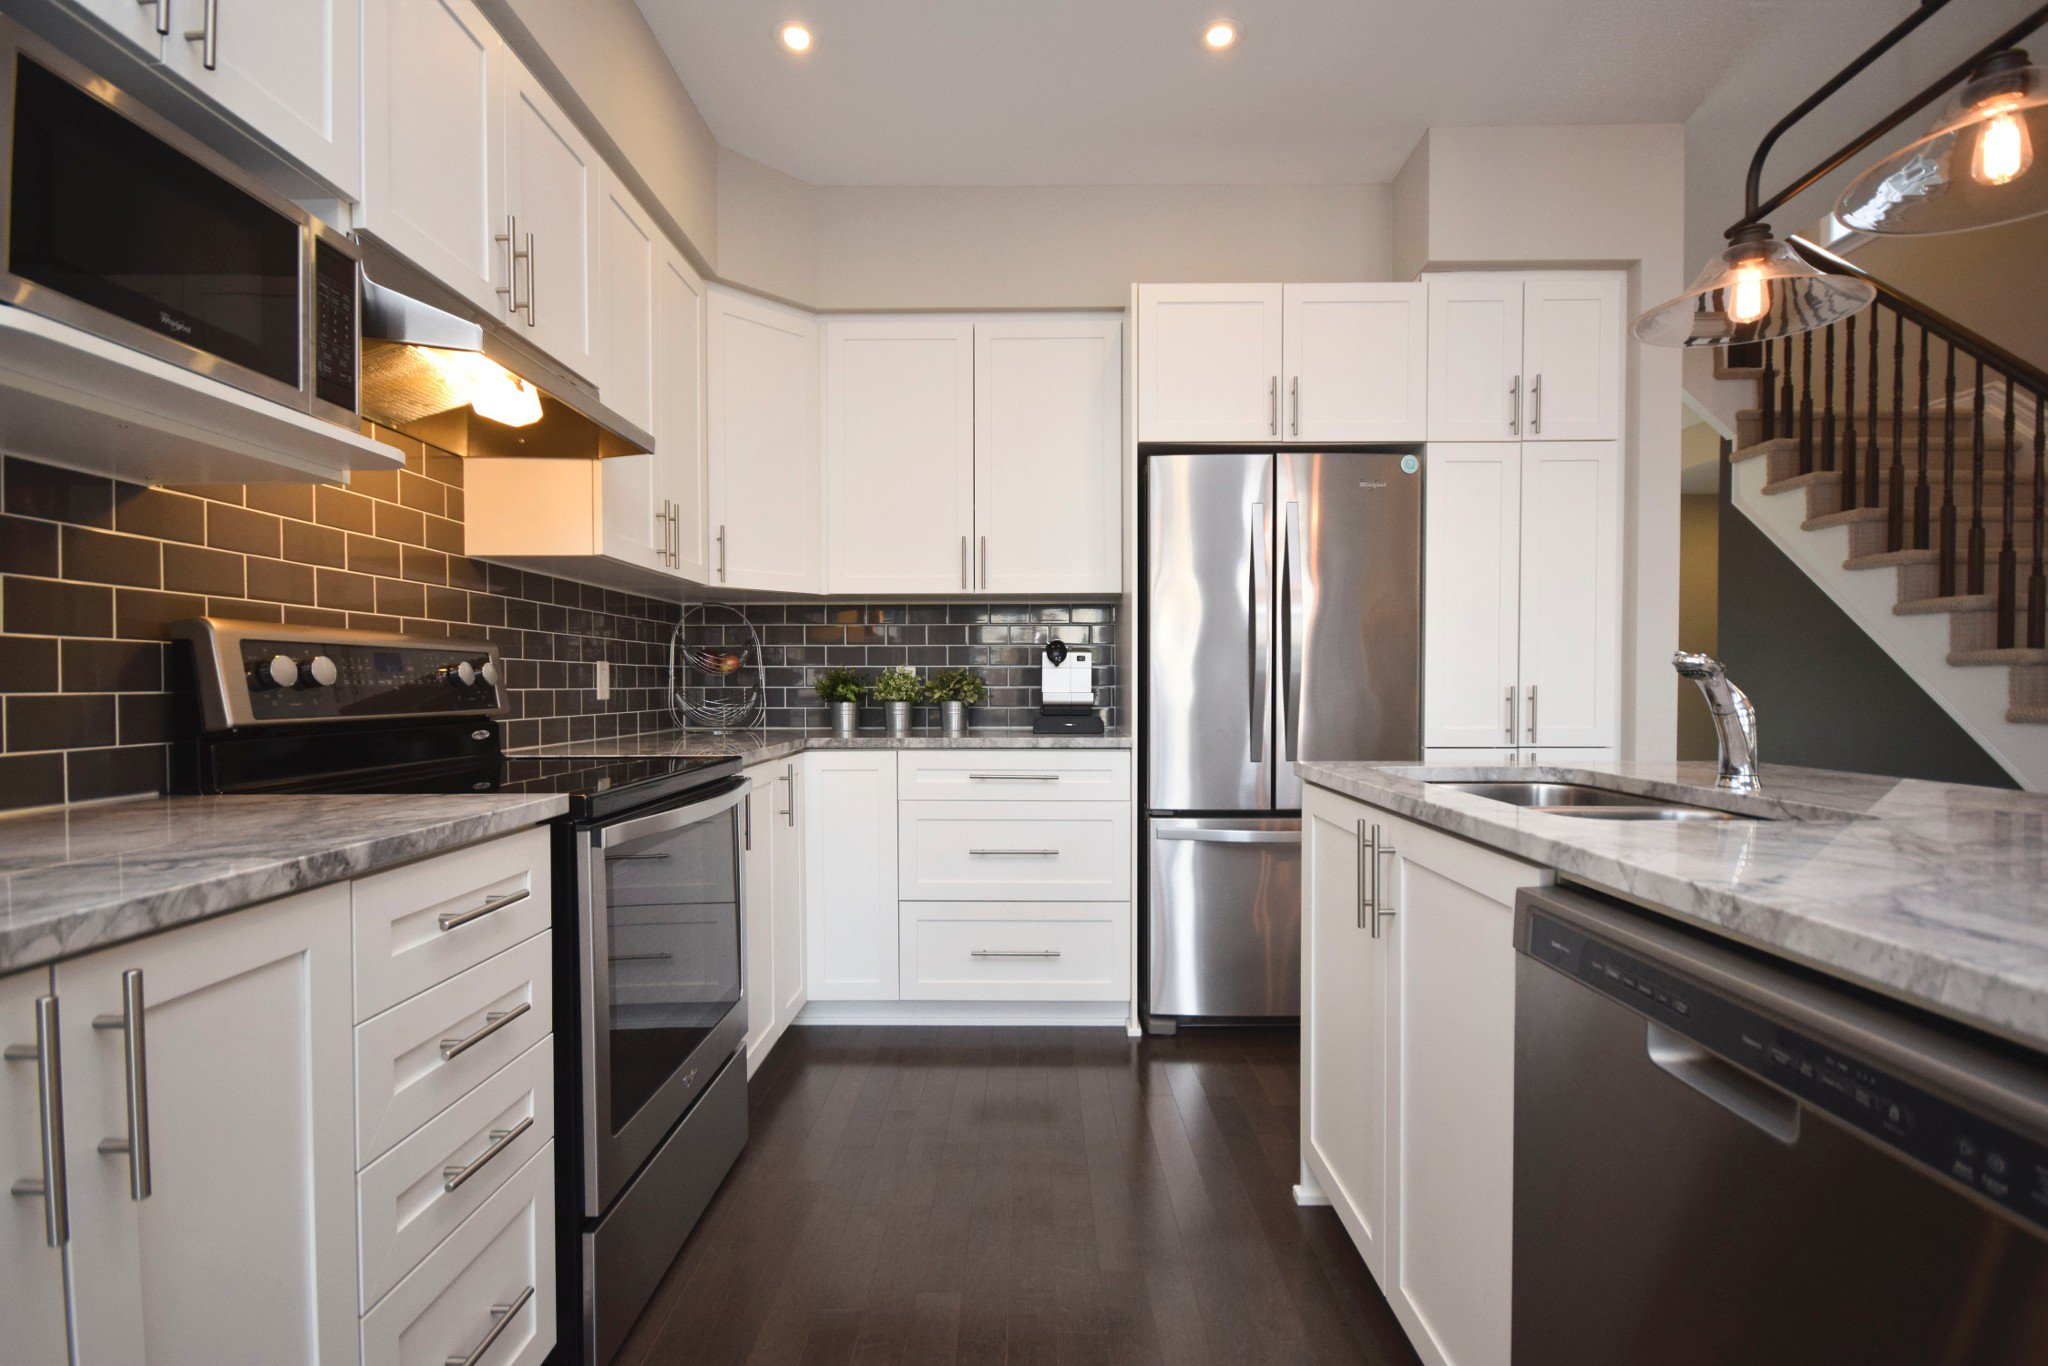 Photo 21: Photos: 131 Popplewell Crescent in Ottawa: Cedargrove / Fraserdale House for sale (Barrhaven)  : MLS®# 1130335